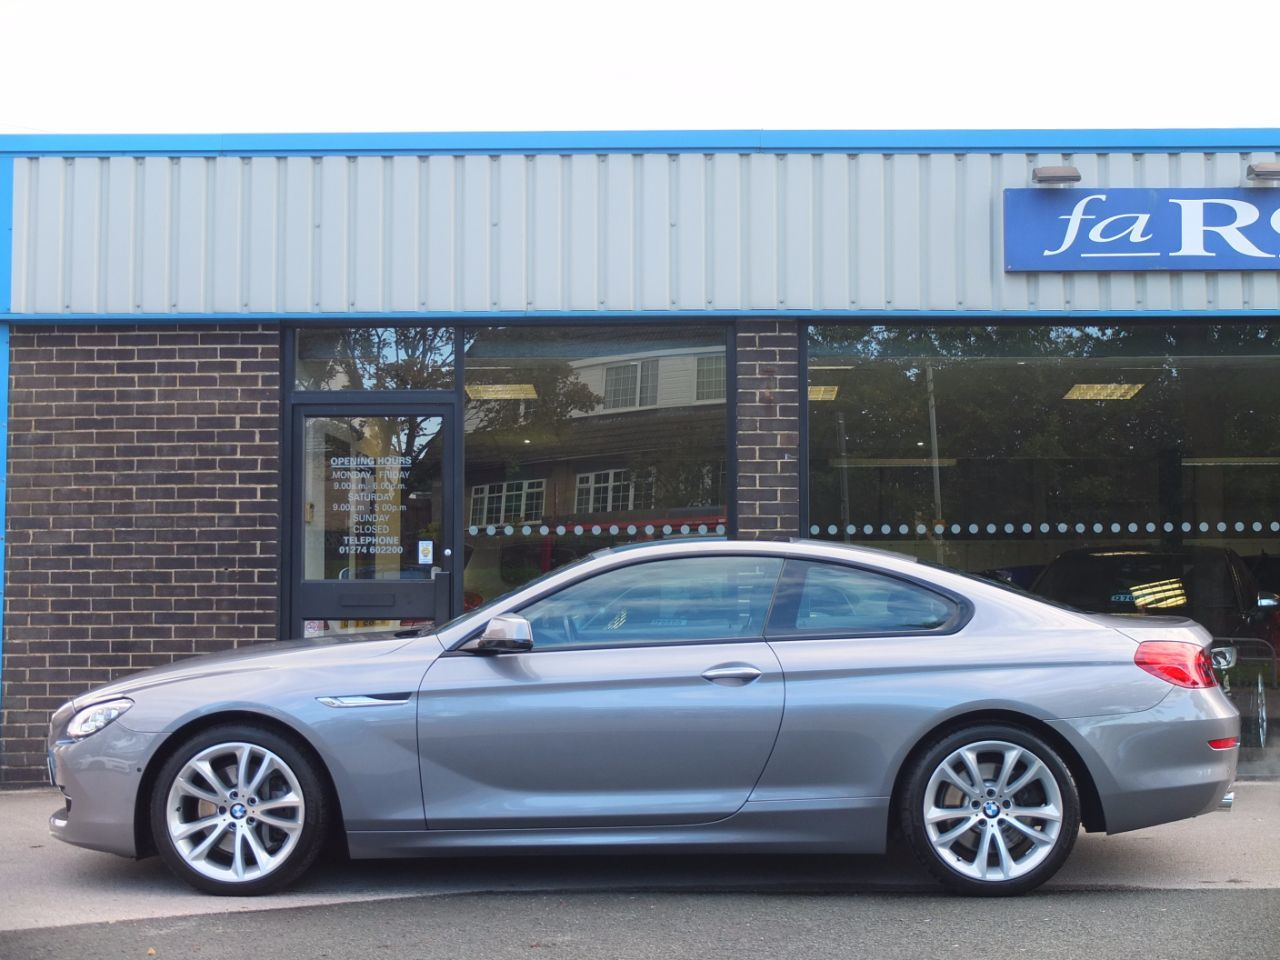 BMW 6 Series 3.0 640d SE Coupe Auto ++++Spec Coupe Diesel Space Grey Metallic